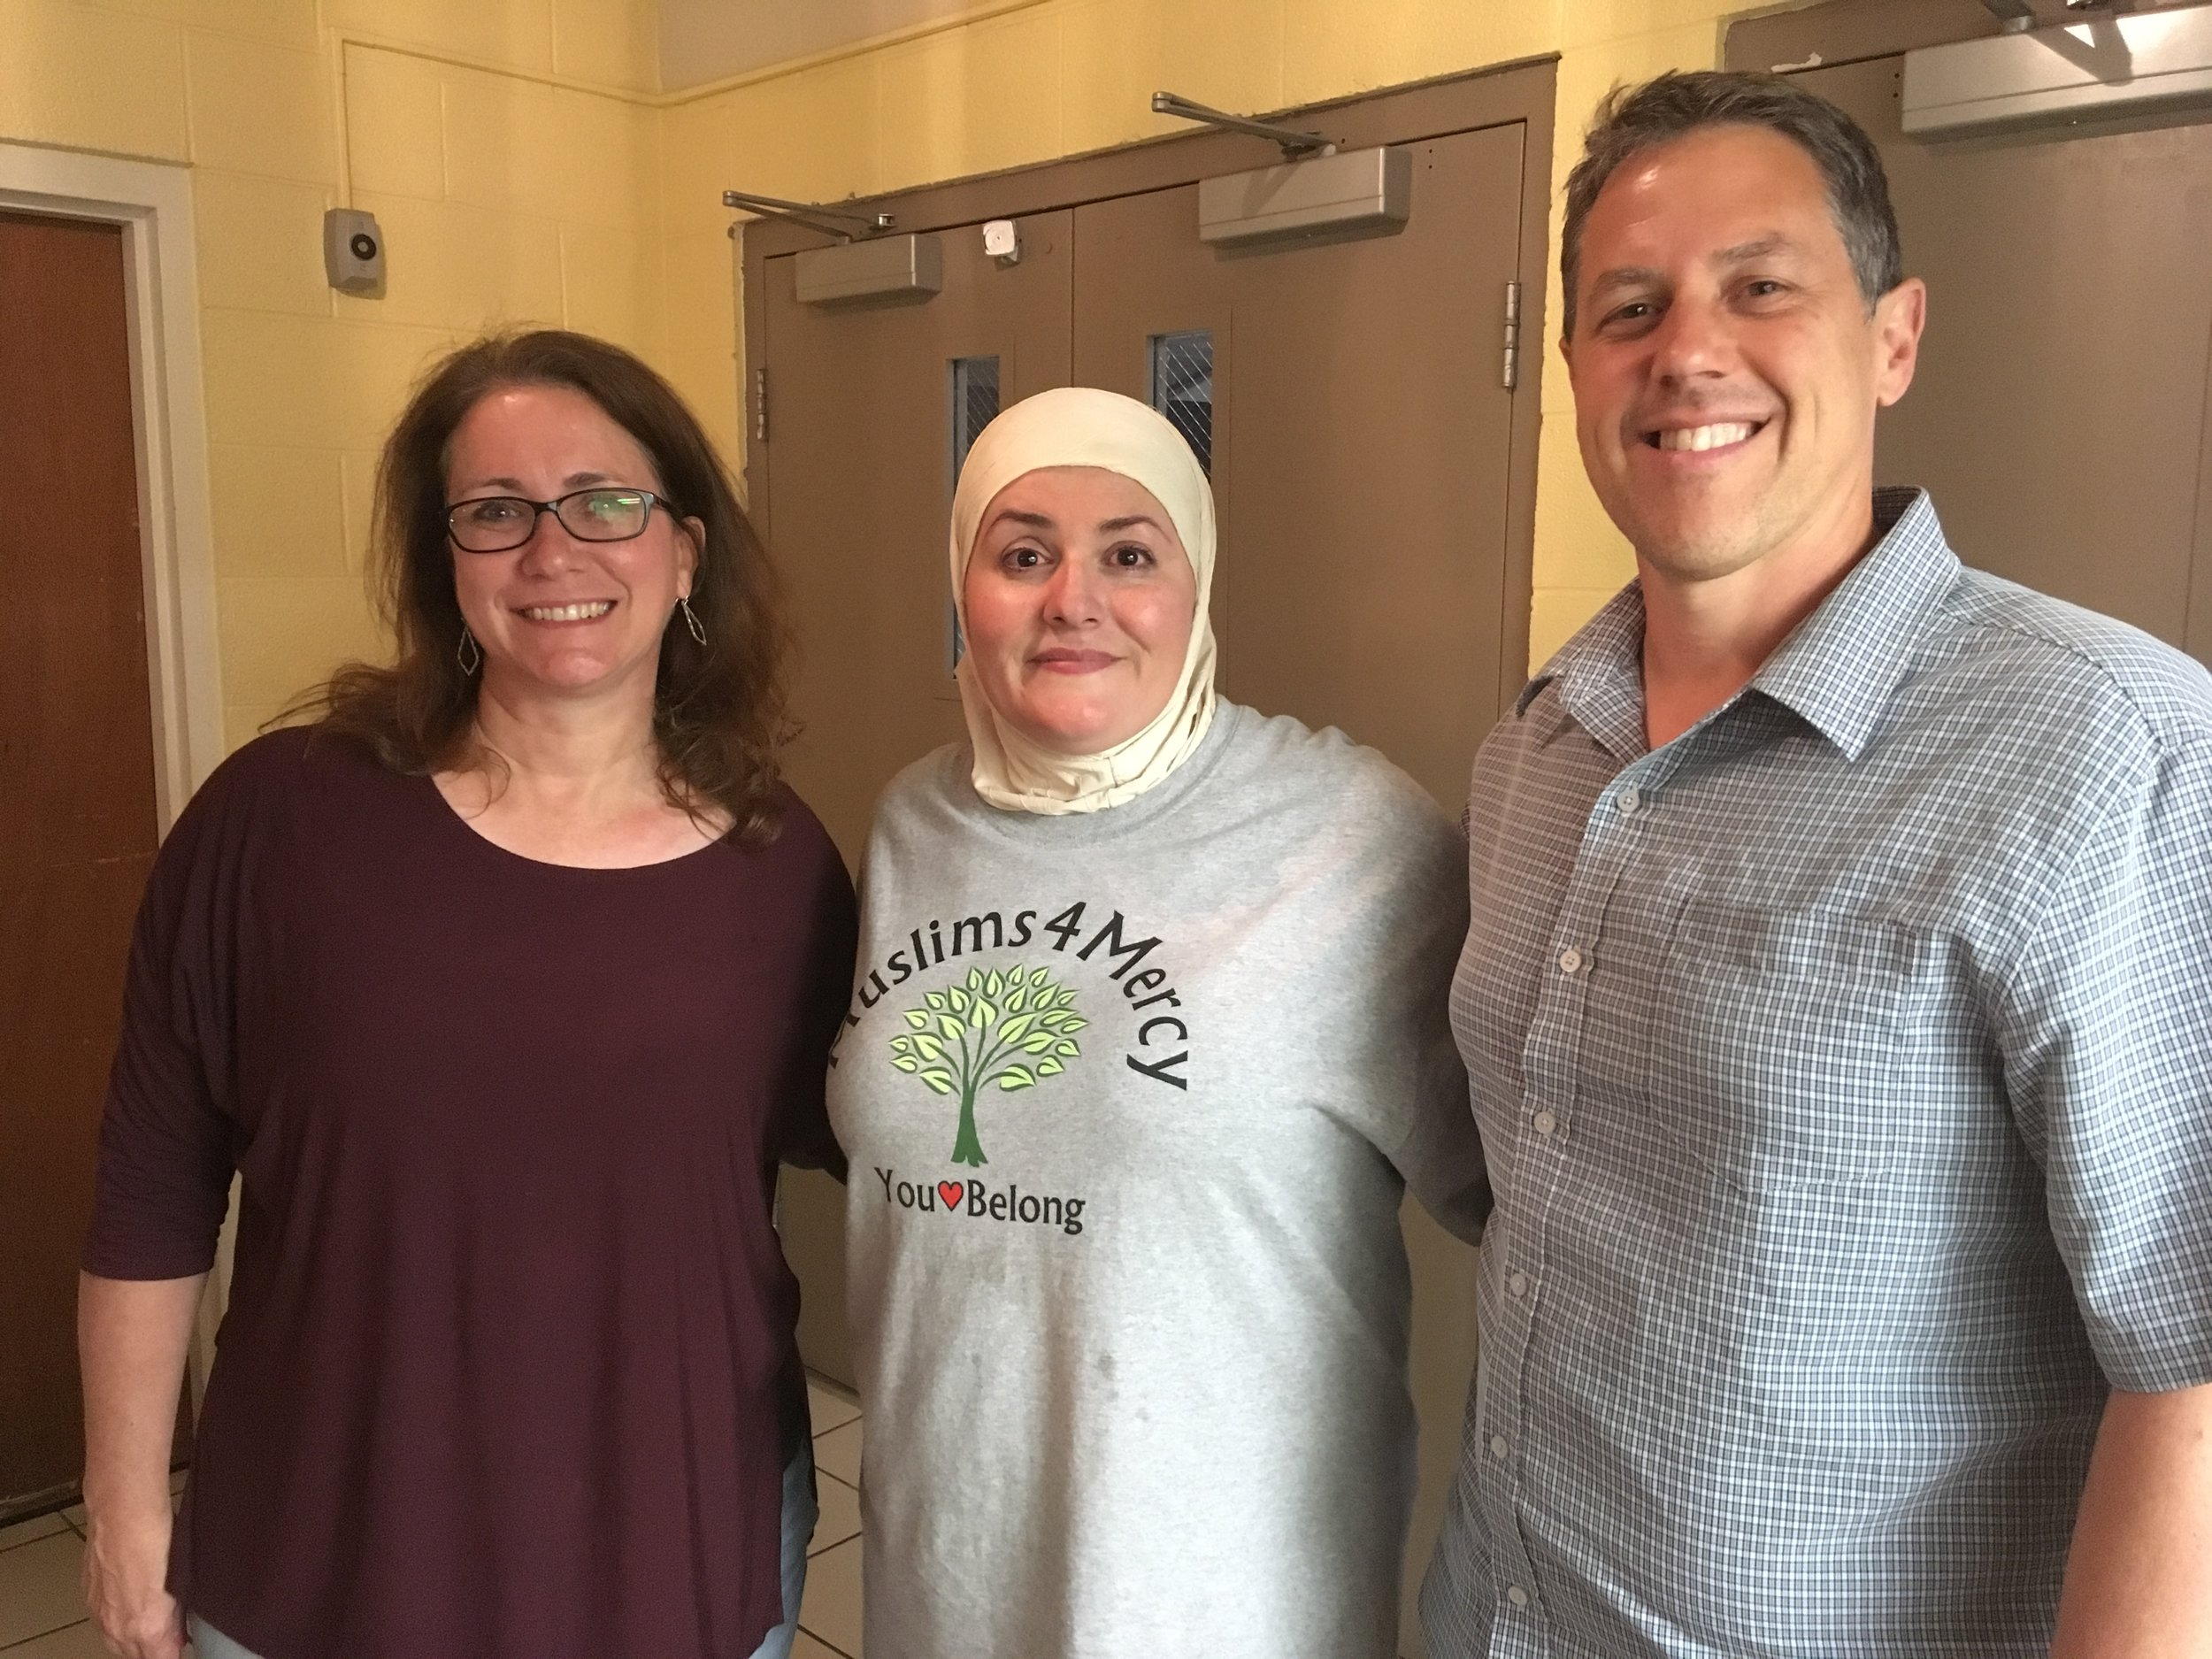 Jill Taylor, Aliye Shimi, and Greg Taylor at Memorial Drive Church of Christ for Iftar Dinner sponsored by Islamic Relief and hosted by Muslims4Mercy and Memorial Drive Church of Christ.